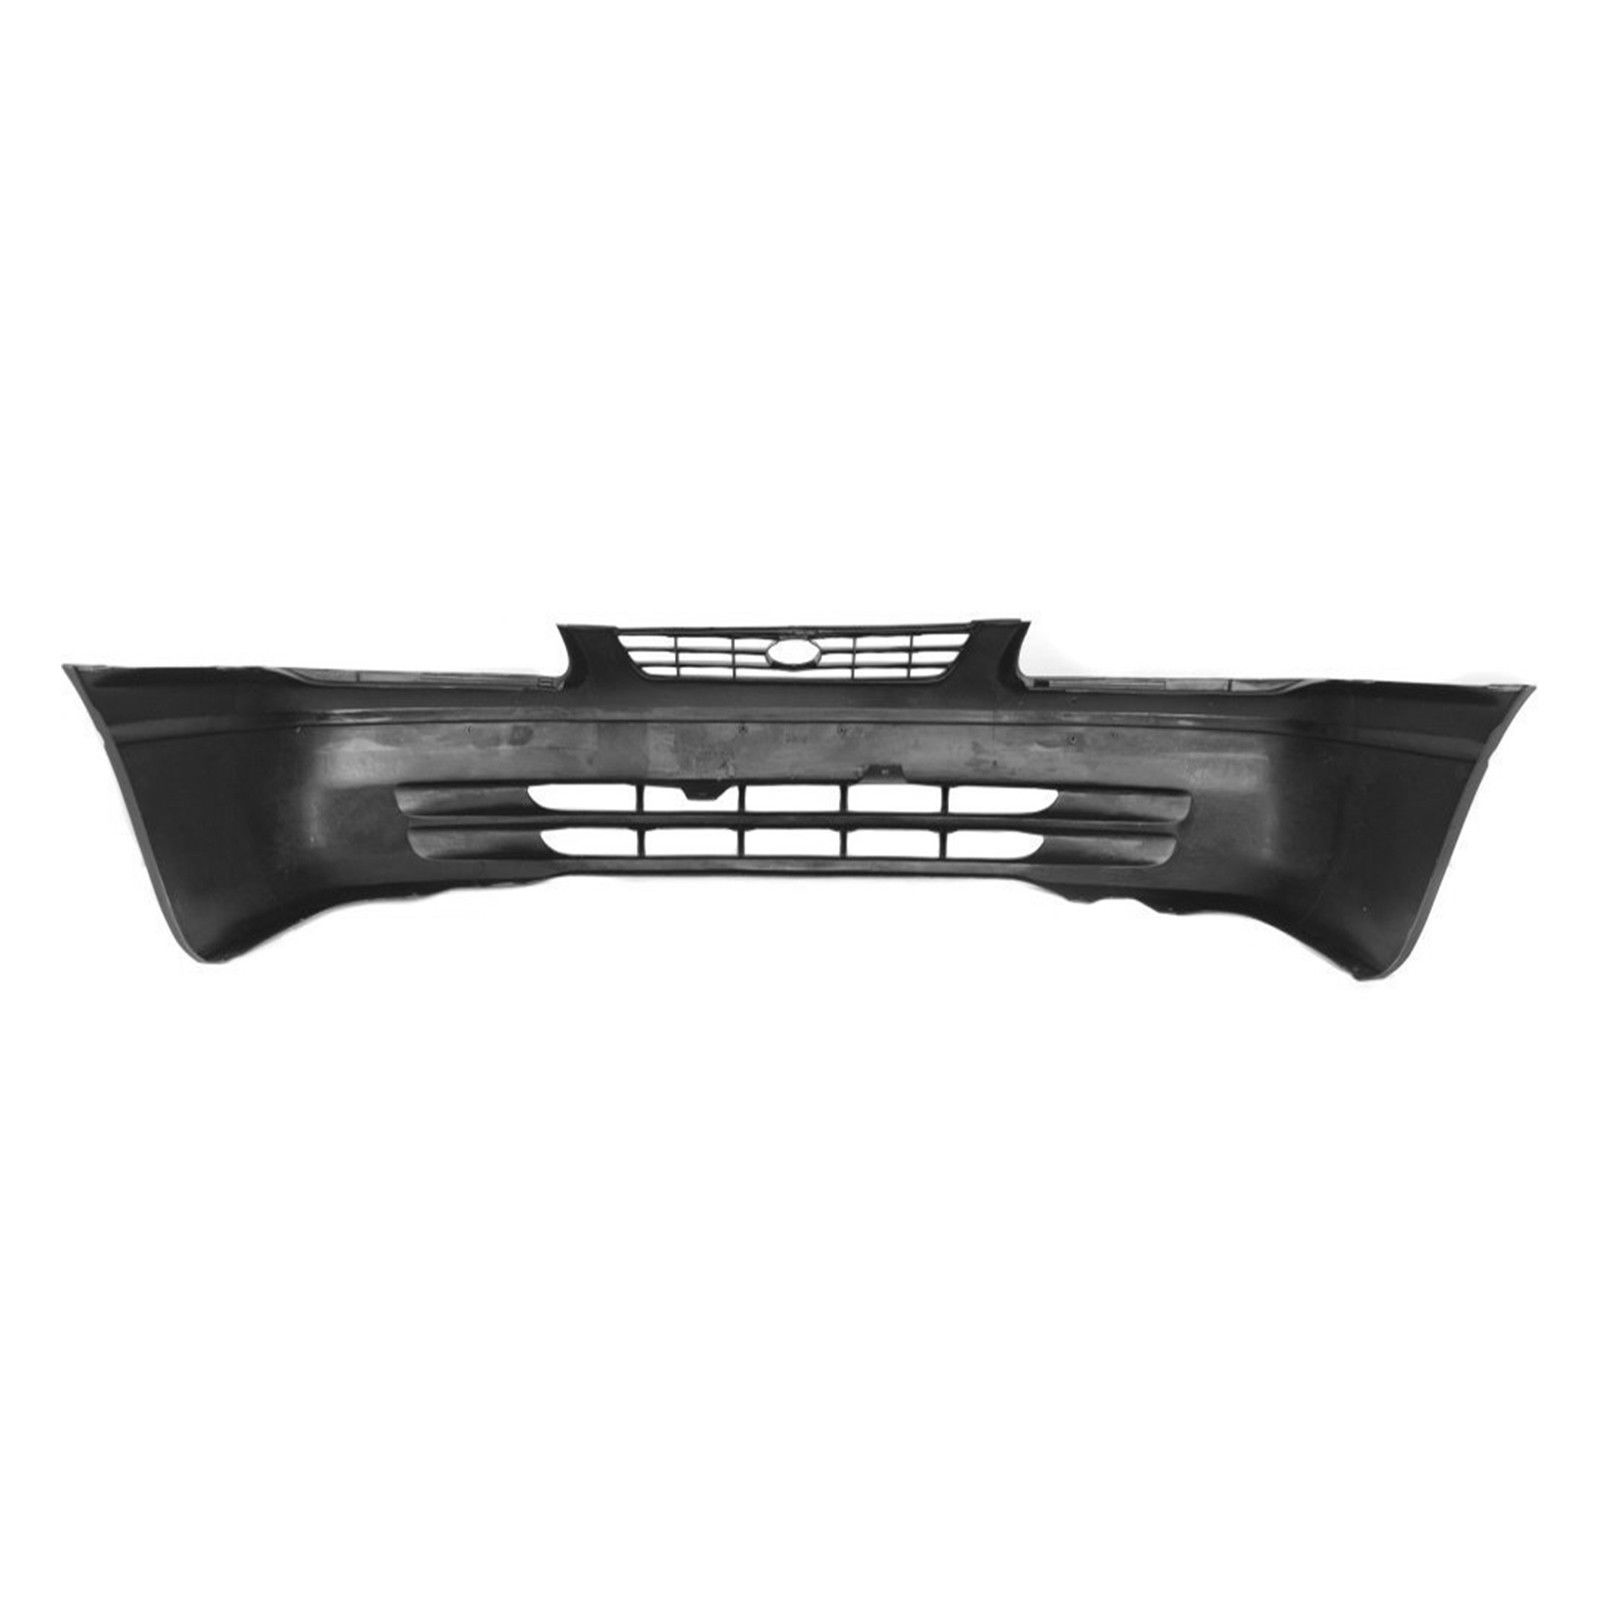 1997-1999 TOYOTA CAMRY Front Bumper Cover Painted to Match